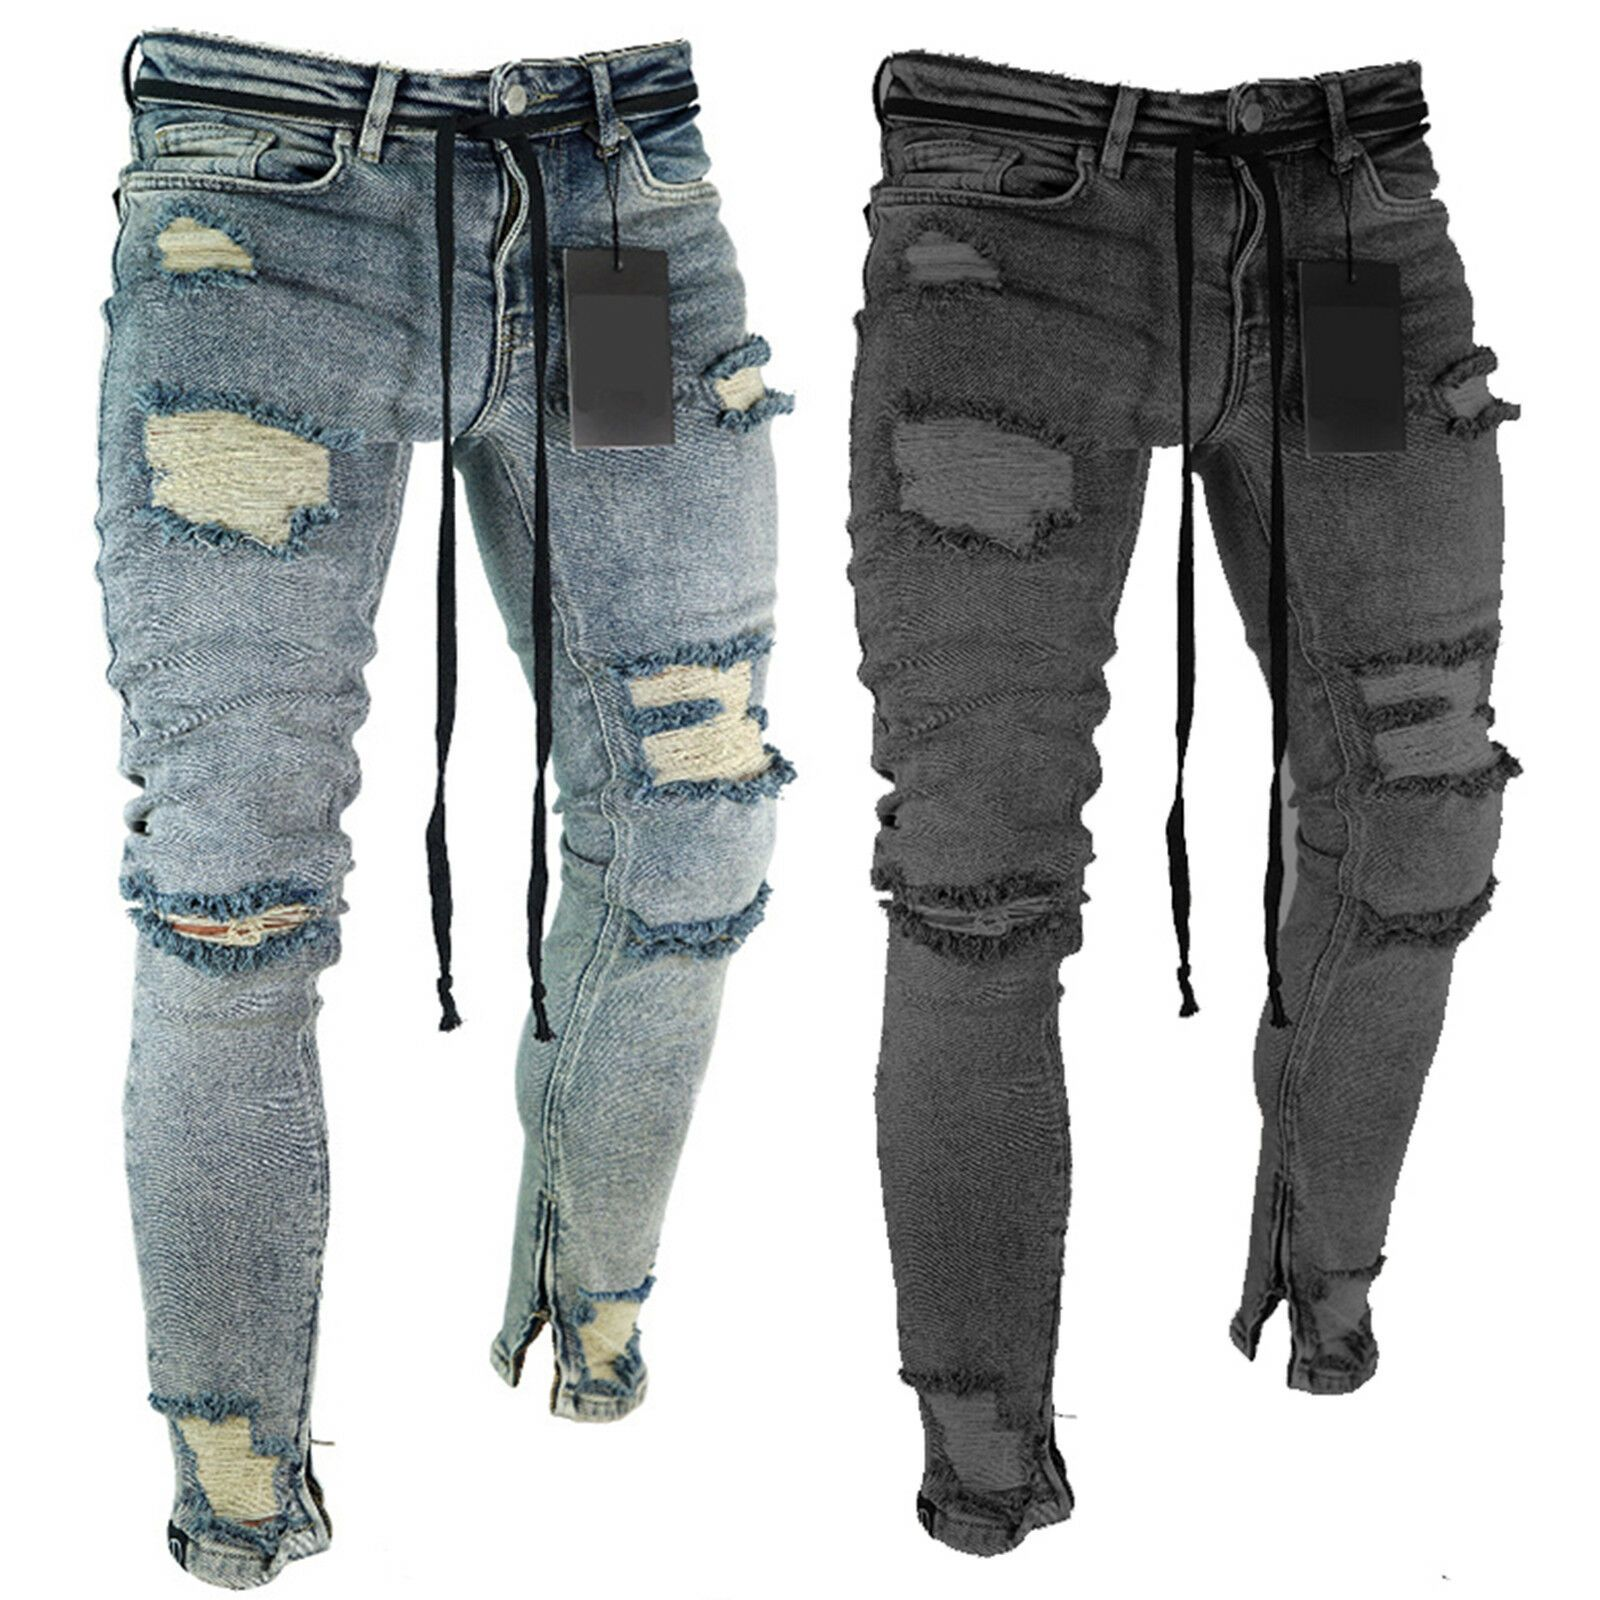 Men Skinny Denim Jeans Distressed Ripped Destroyed Biker Pants Designer Trousers Ideas Of Blac In 2020 Ripped Jeans Mens Fashion Denim Jeans Ripped Ripped Jeans Men,Interior Design Small Apartment Ideas Space Saving